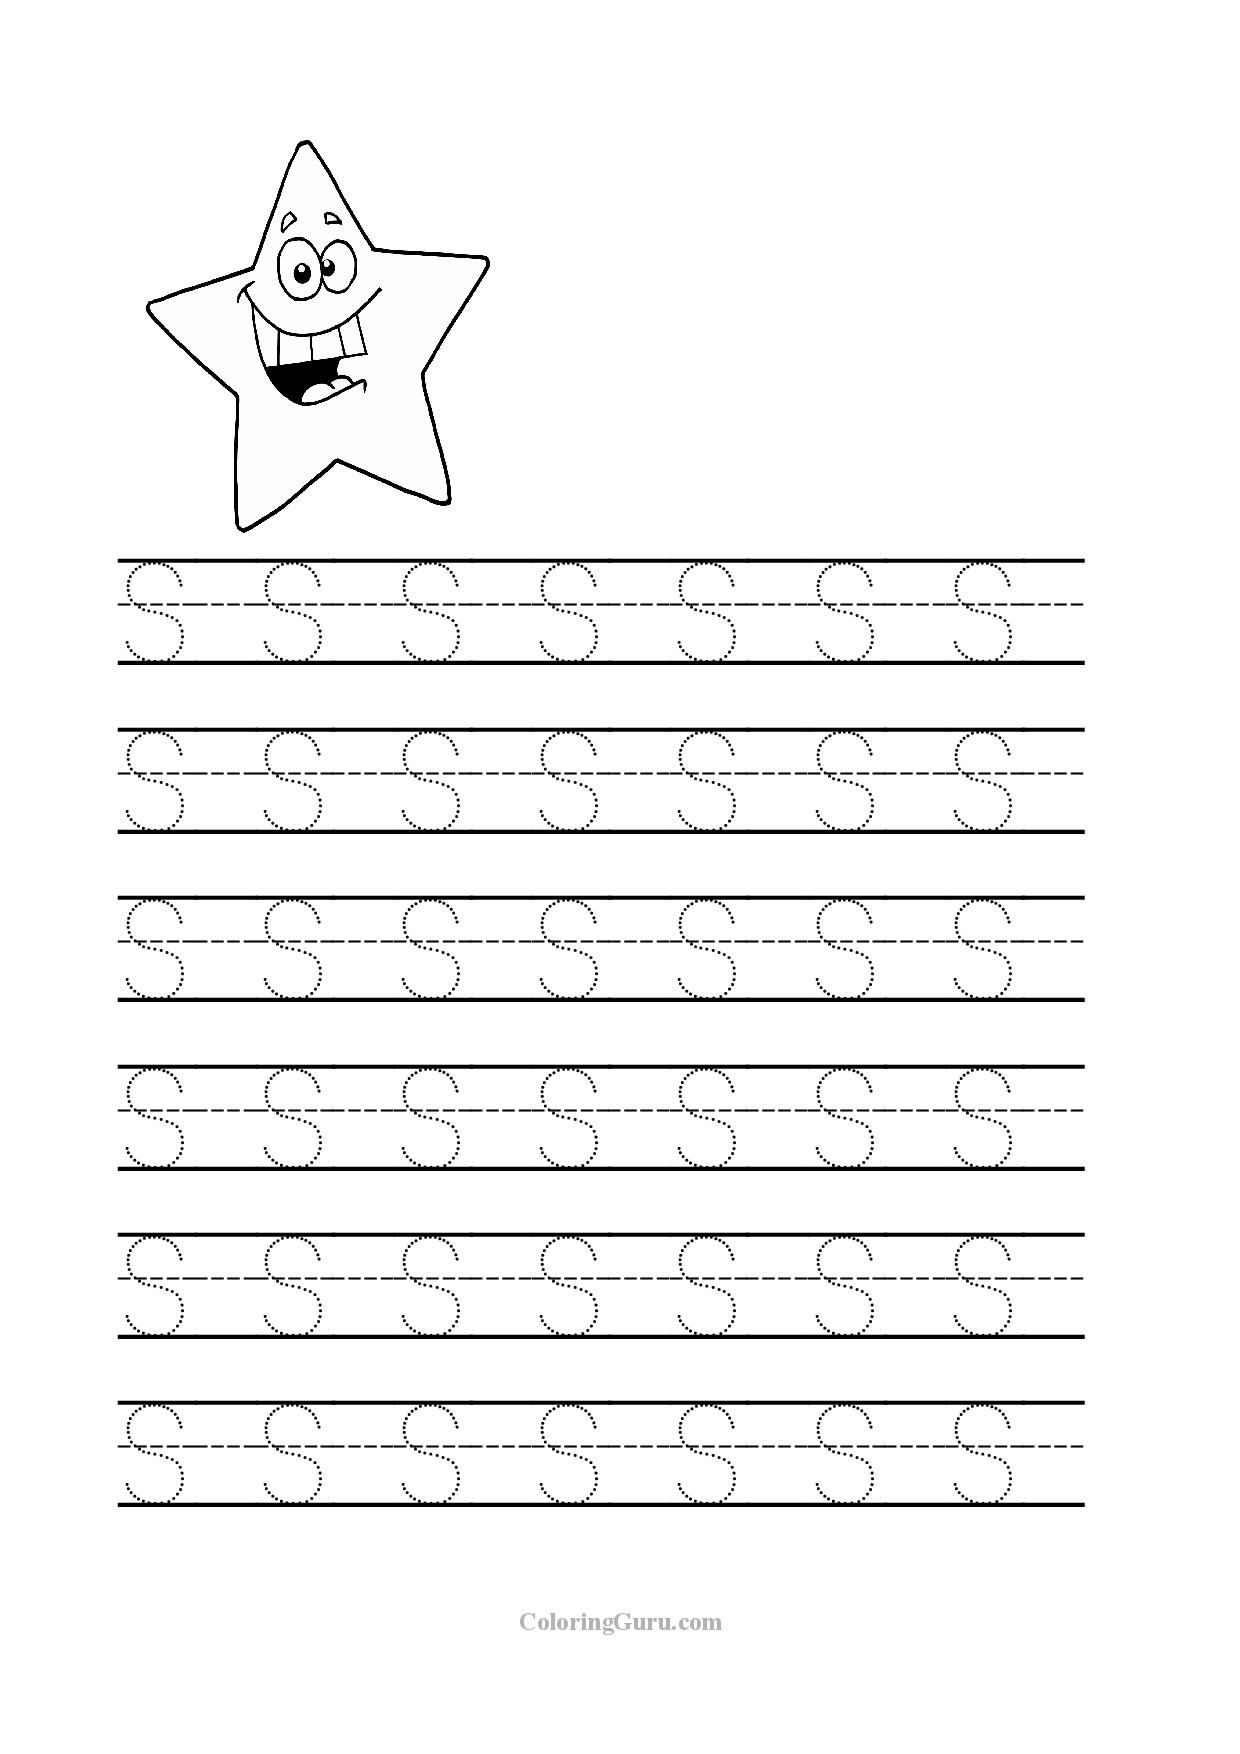 Free Printable Tracing Letter S Worksheets For Preschool intended for Free Printable Tracing Letters For Preschoolers